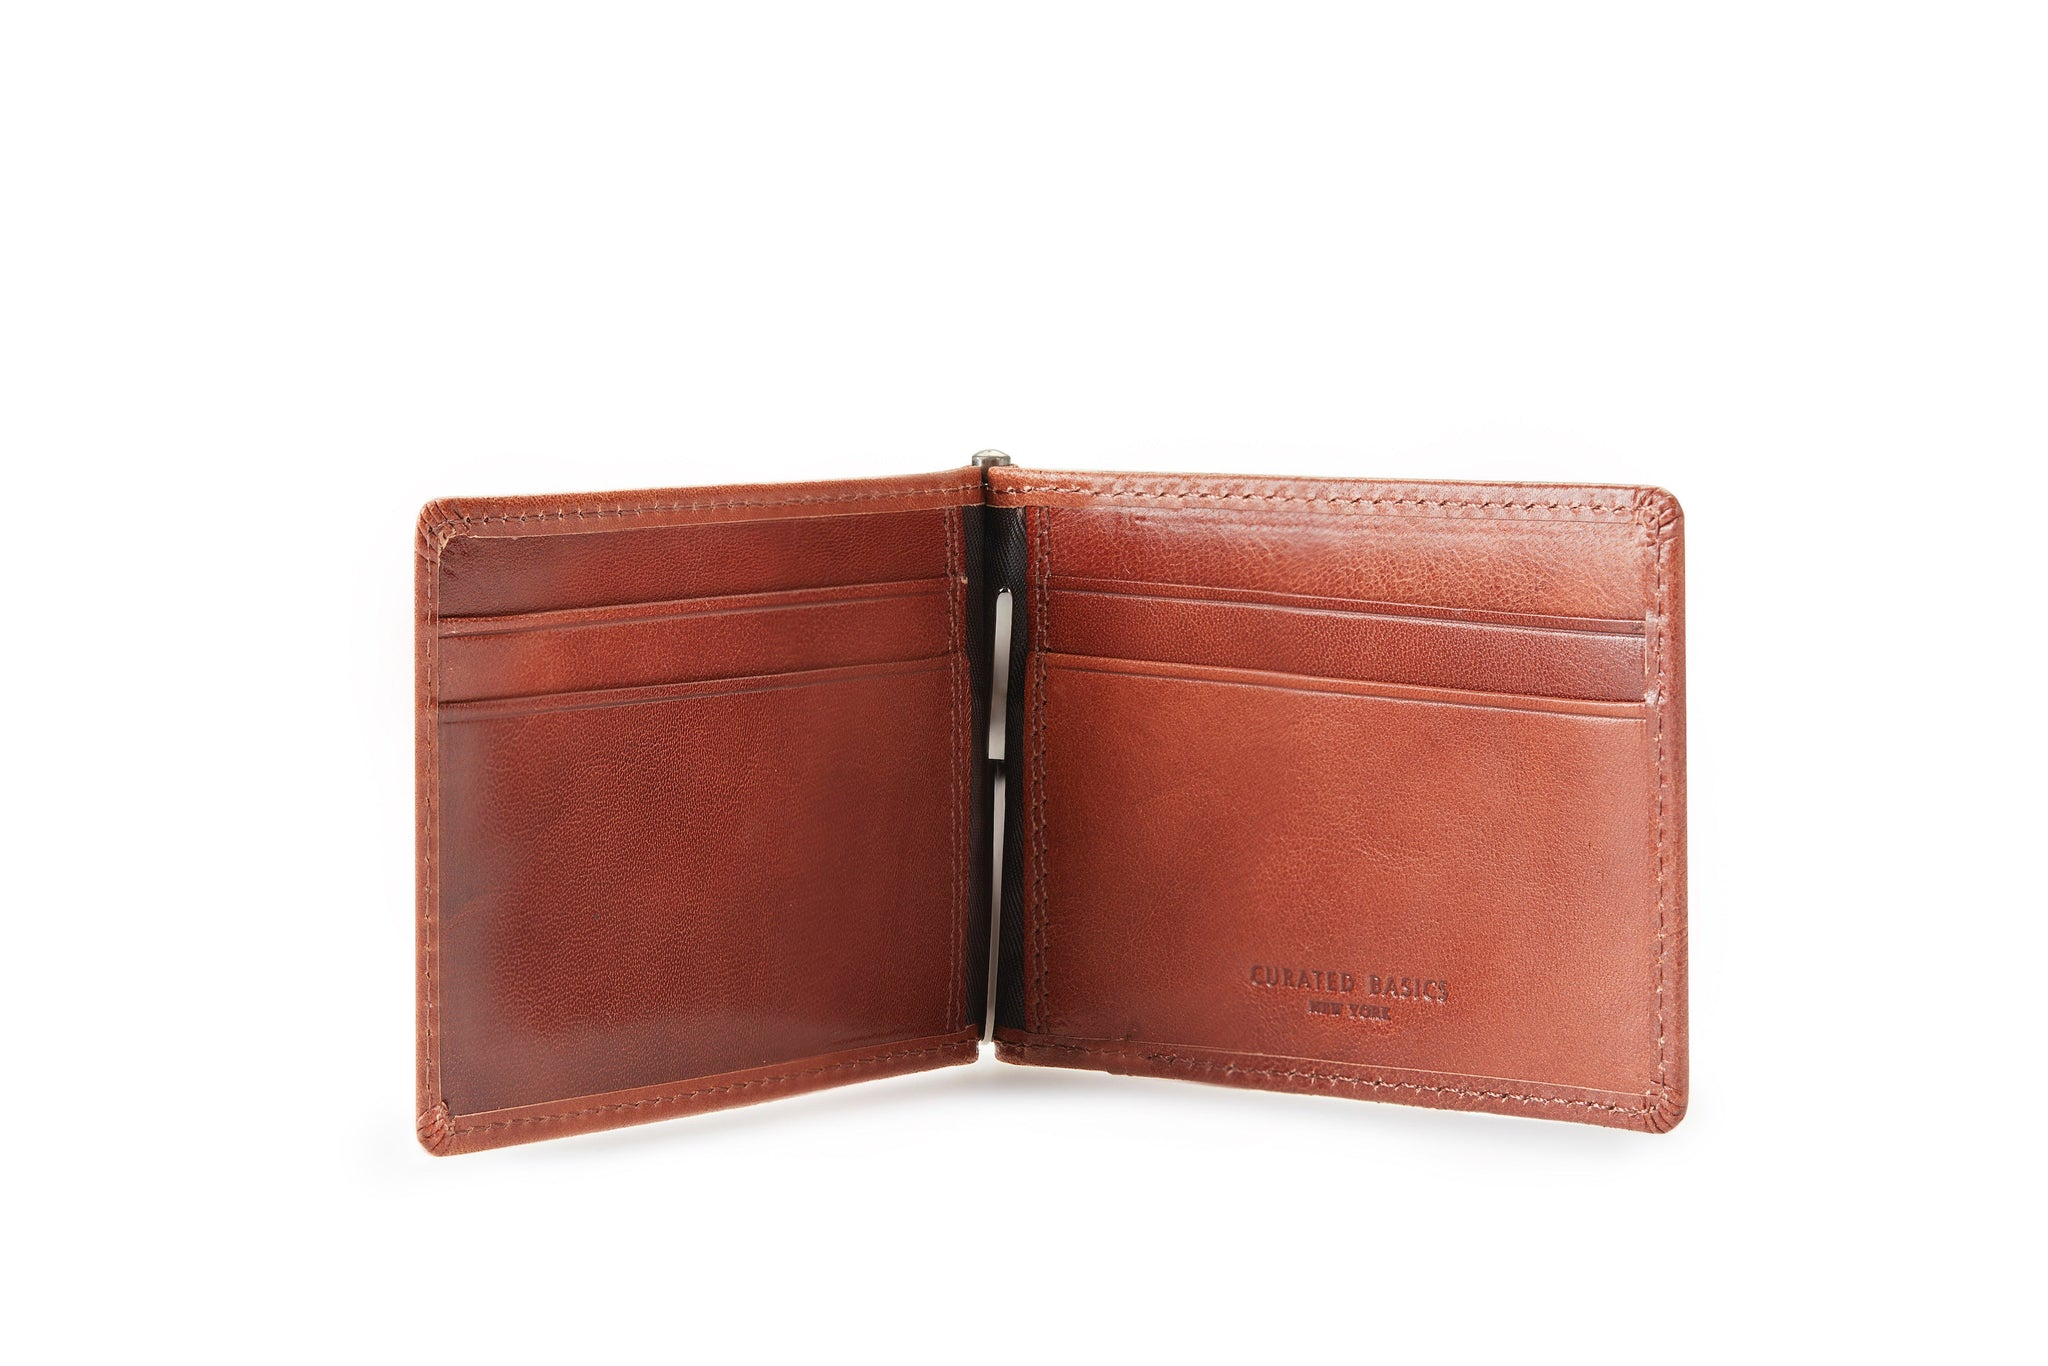 The Leather Money Clip Wallet, opened and showing the inside